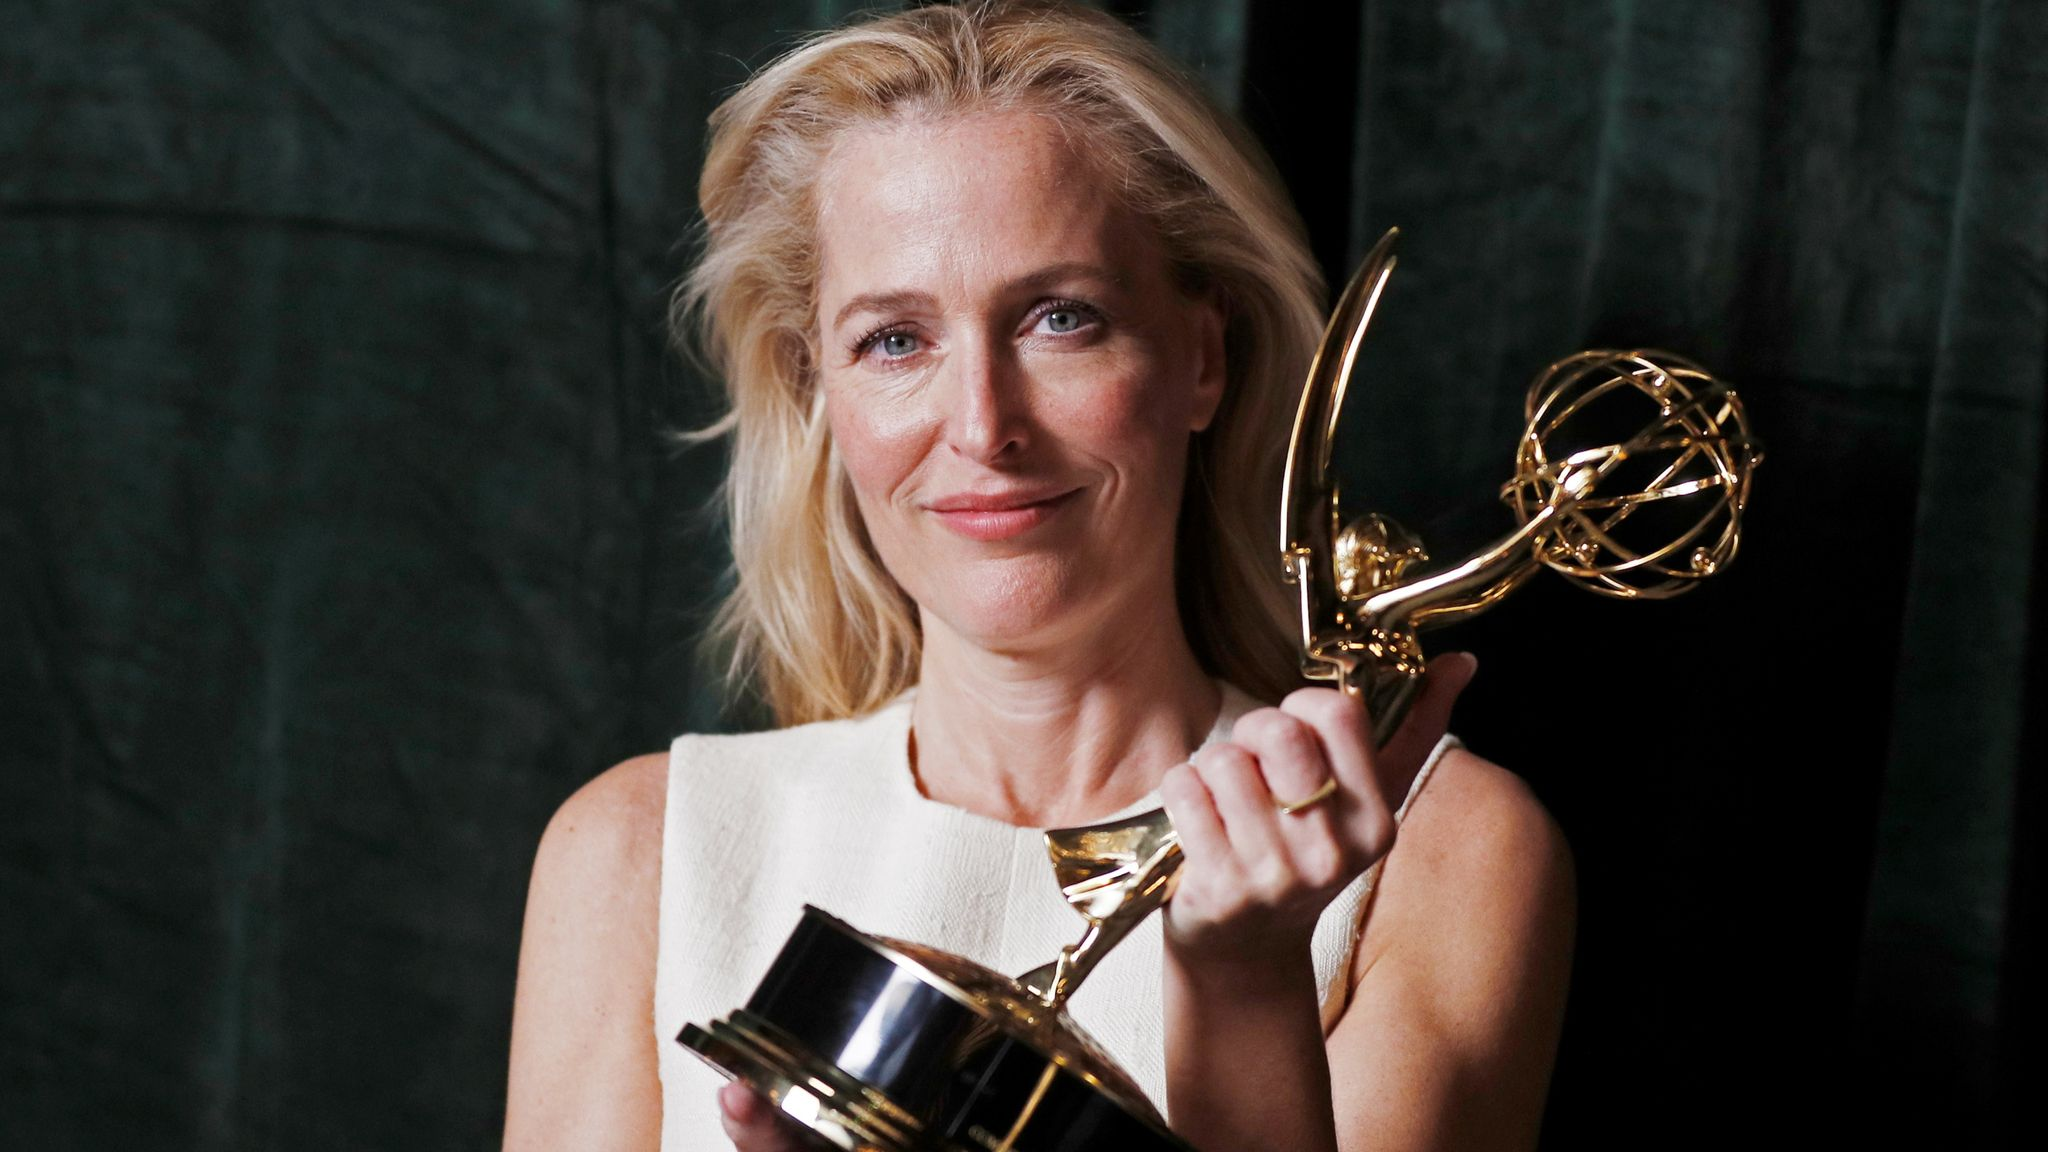 Gillian Anderson was named best supporting actress in a drama for her portrayal of Margaret Thatcher in The Crown at the 2021 Emmy Awards